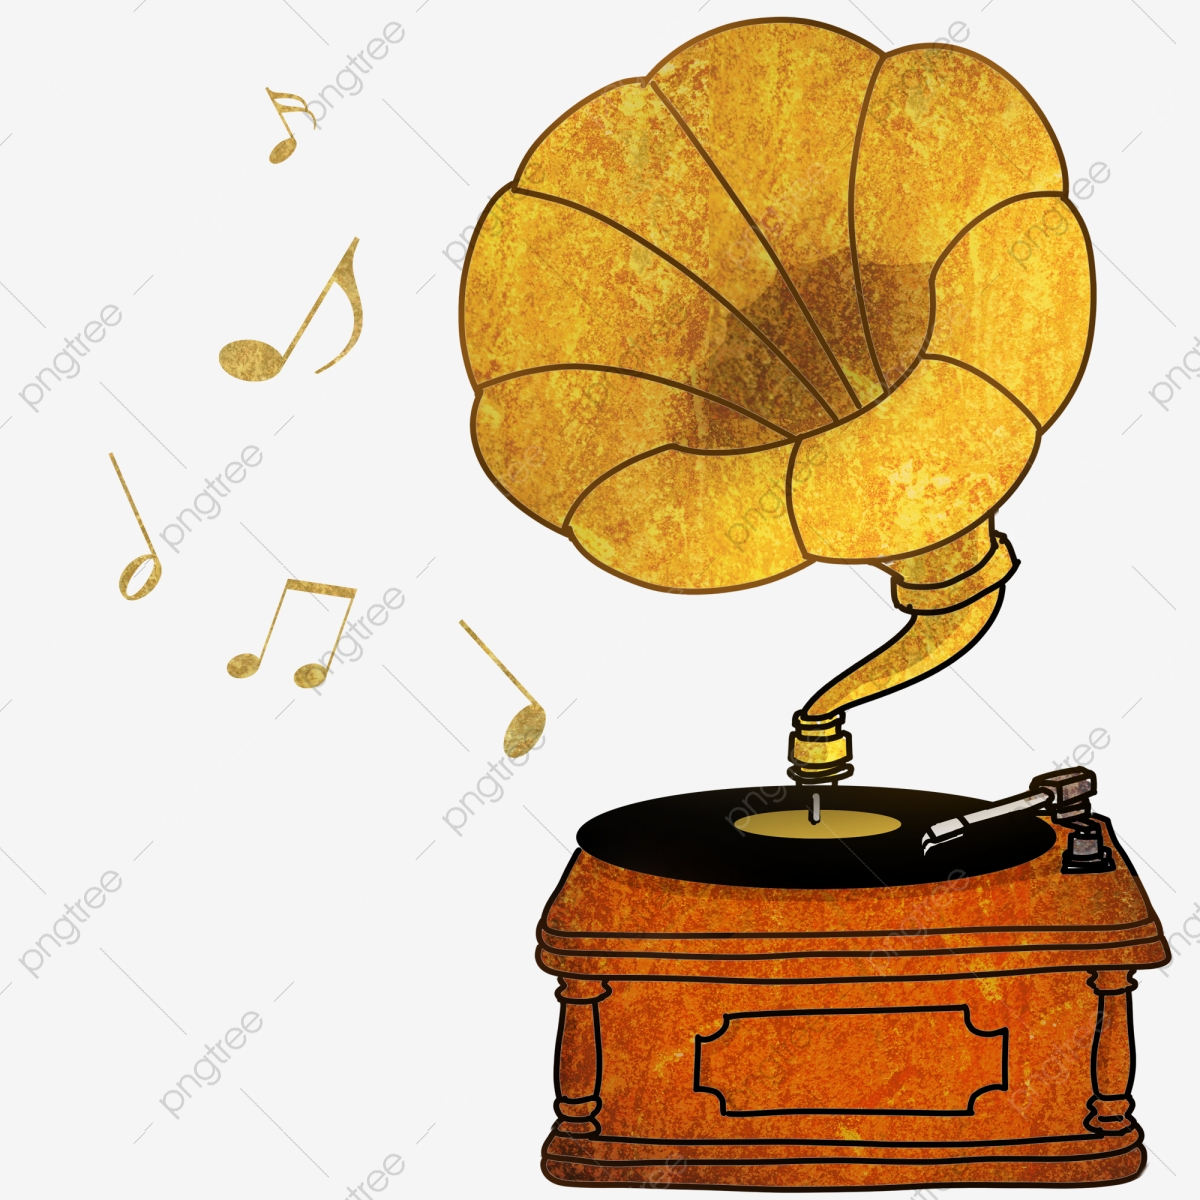 gramophone png vector psd and clipart with transparent background for free download pngtree https pngtree com freepng grammy gramophone 5423560 html